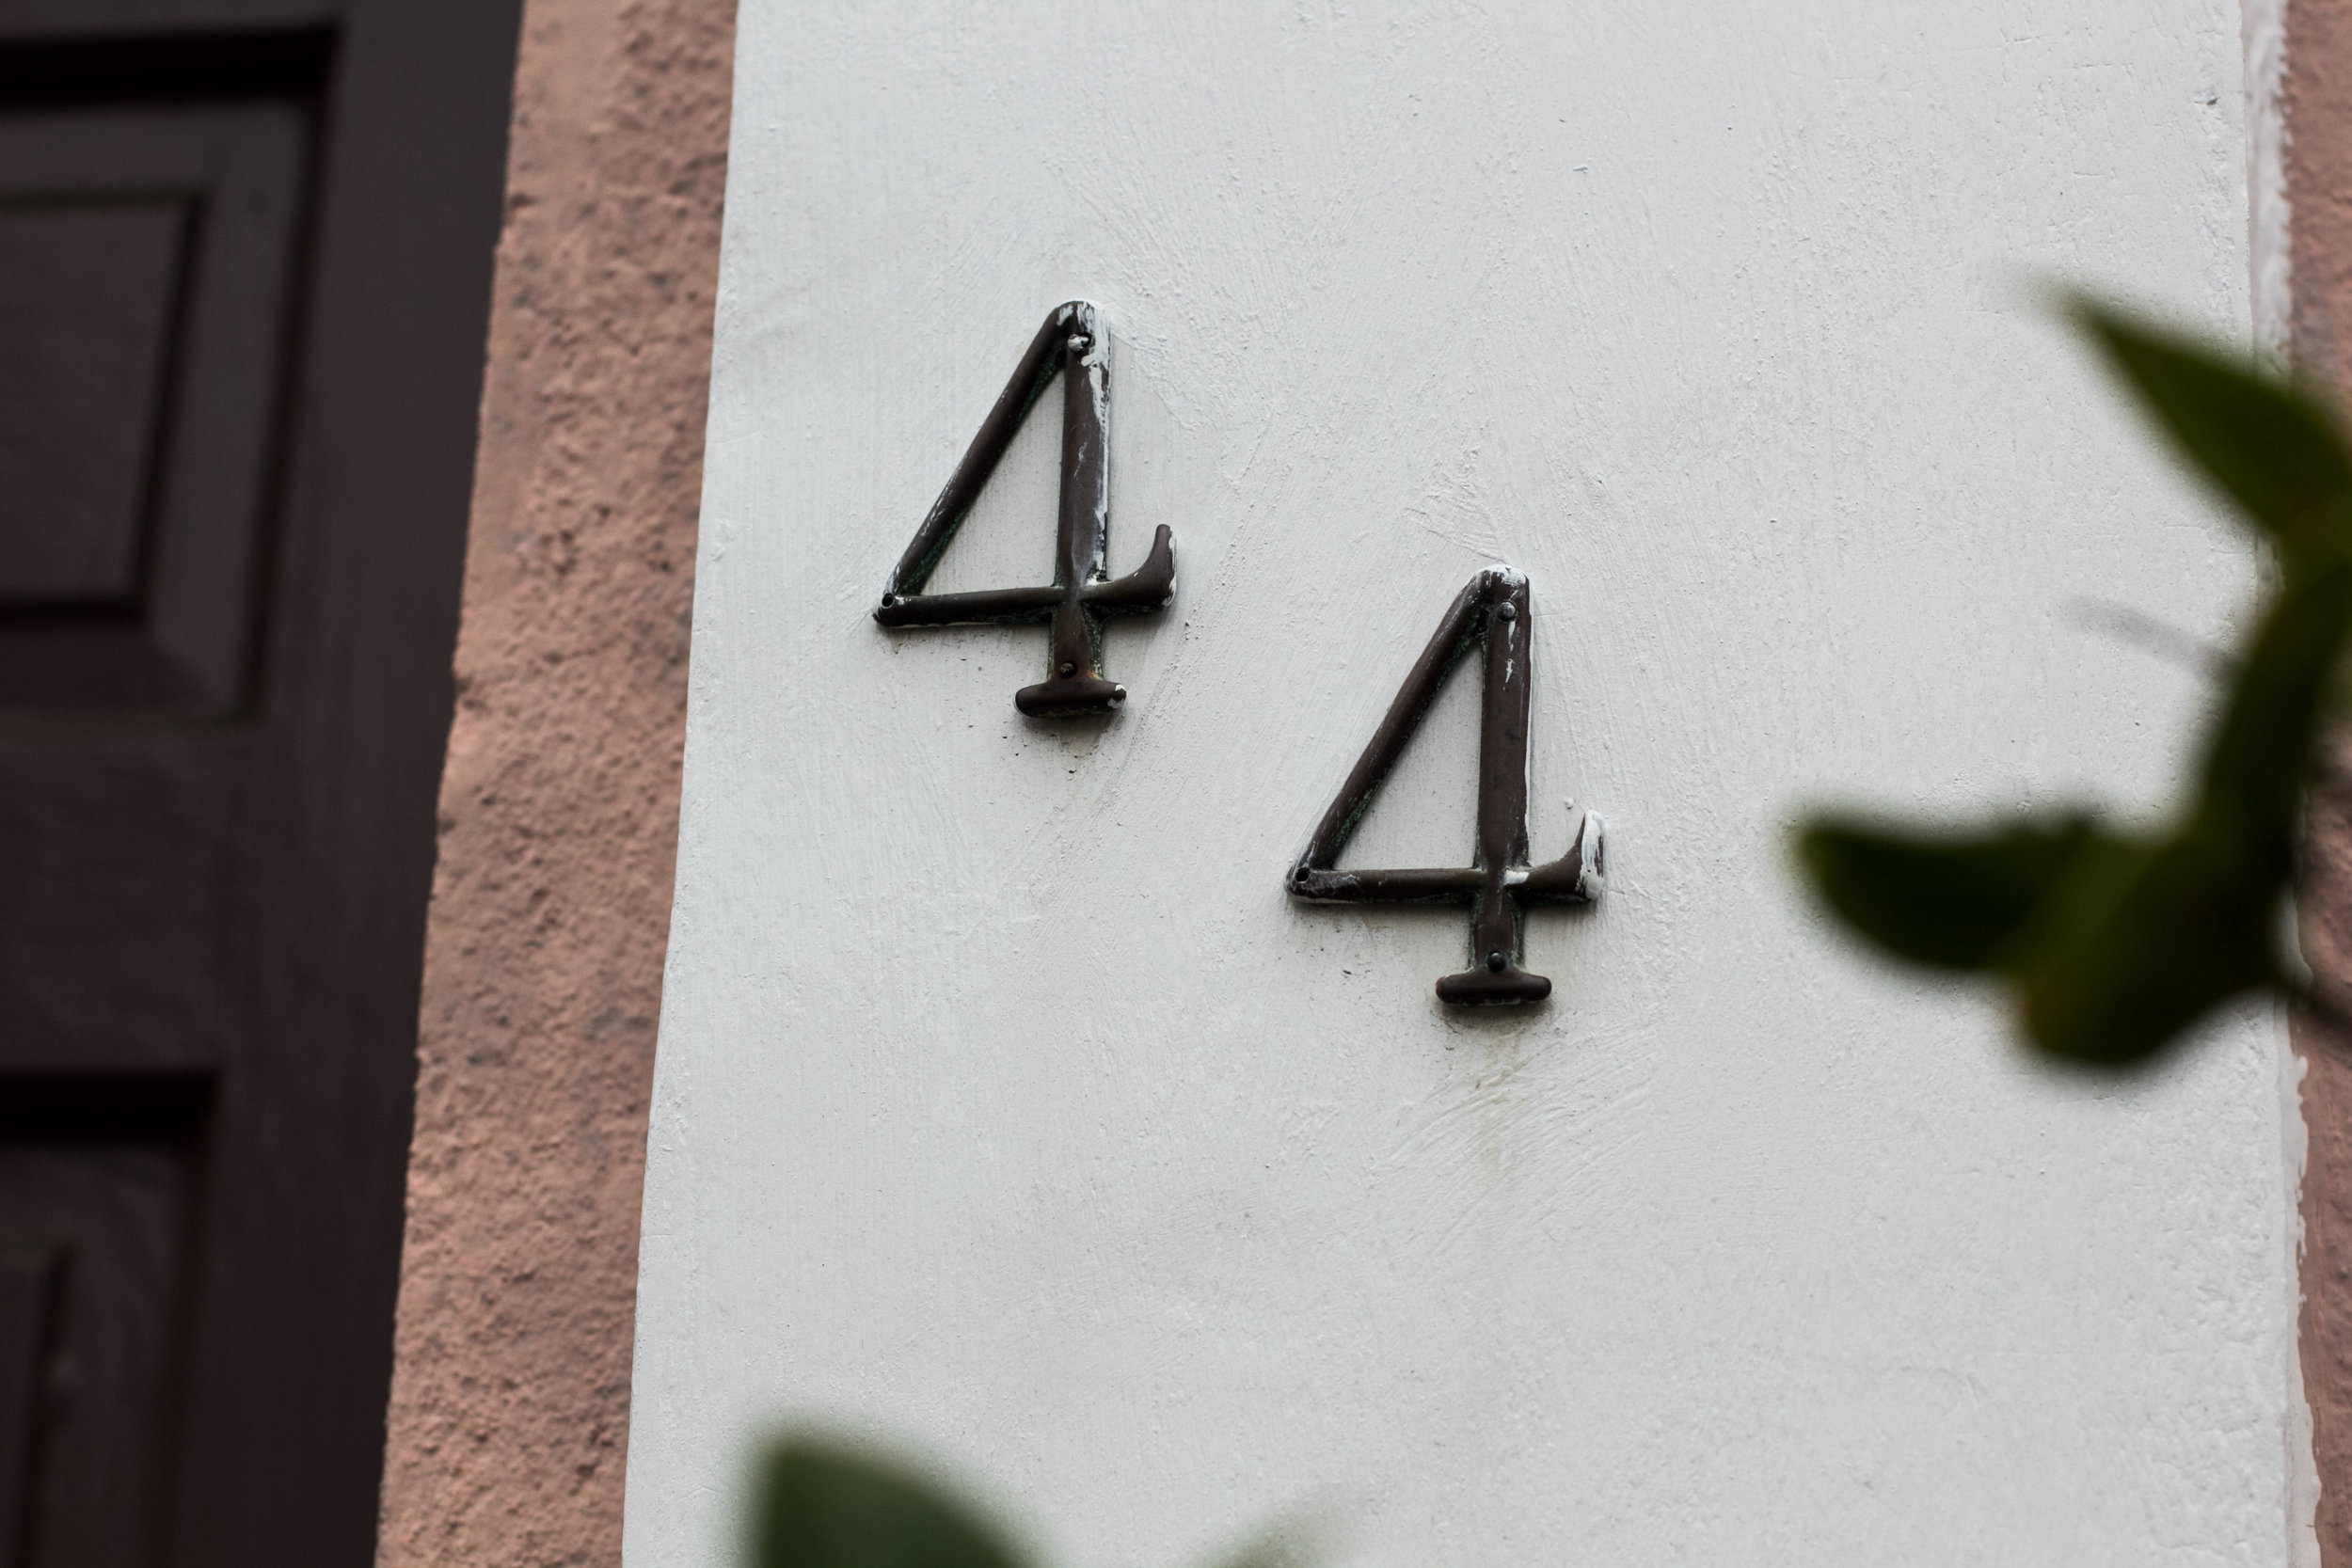 Address on the property or the mailbox